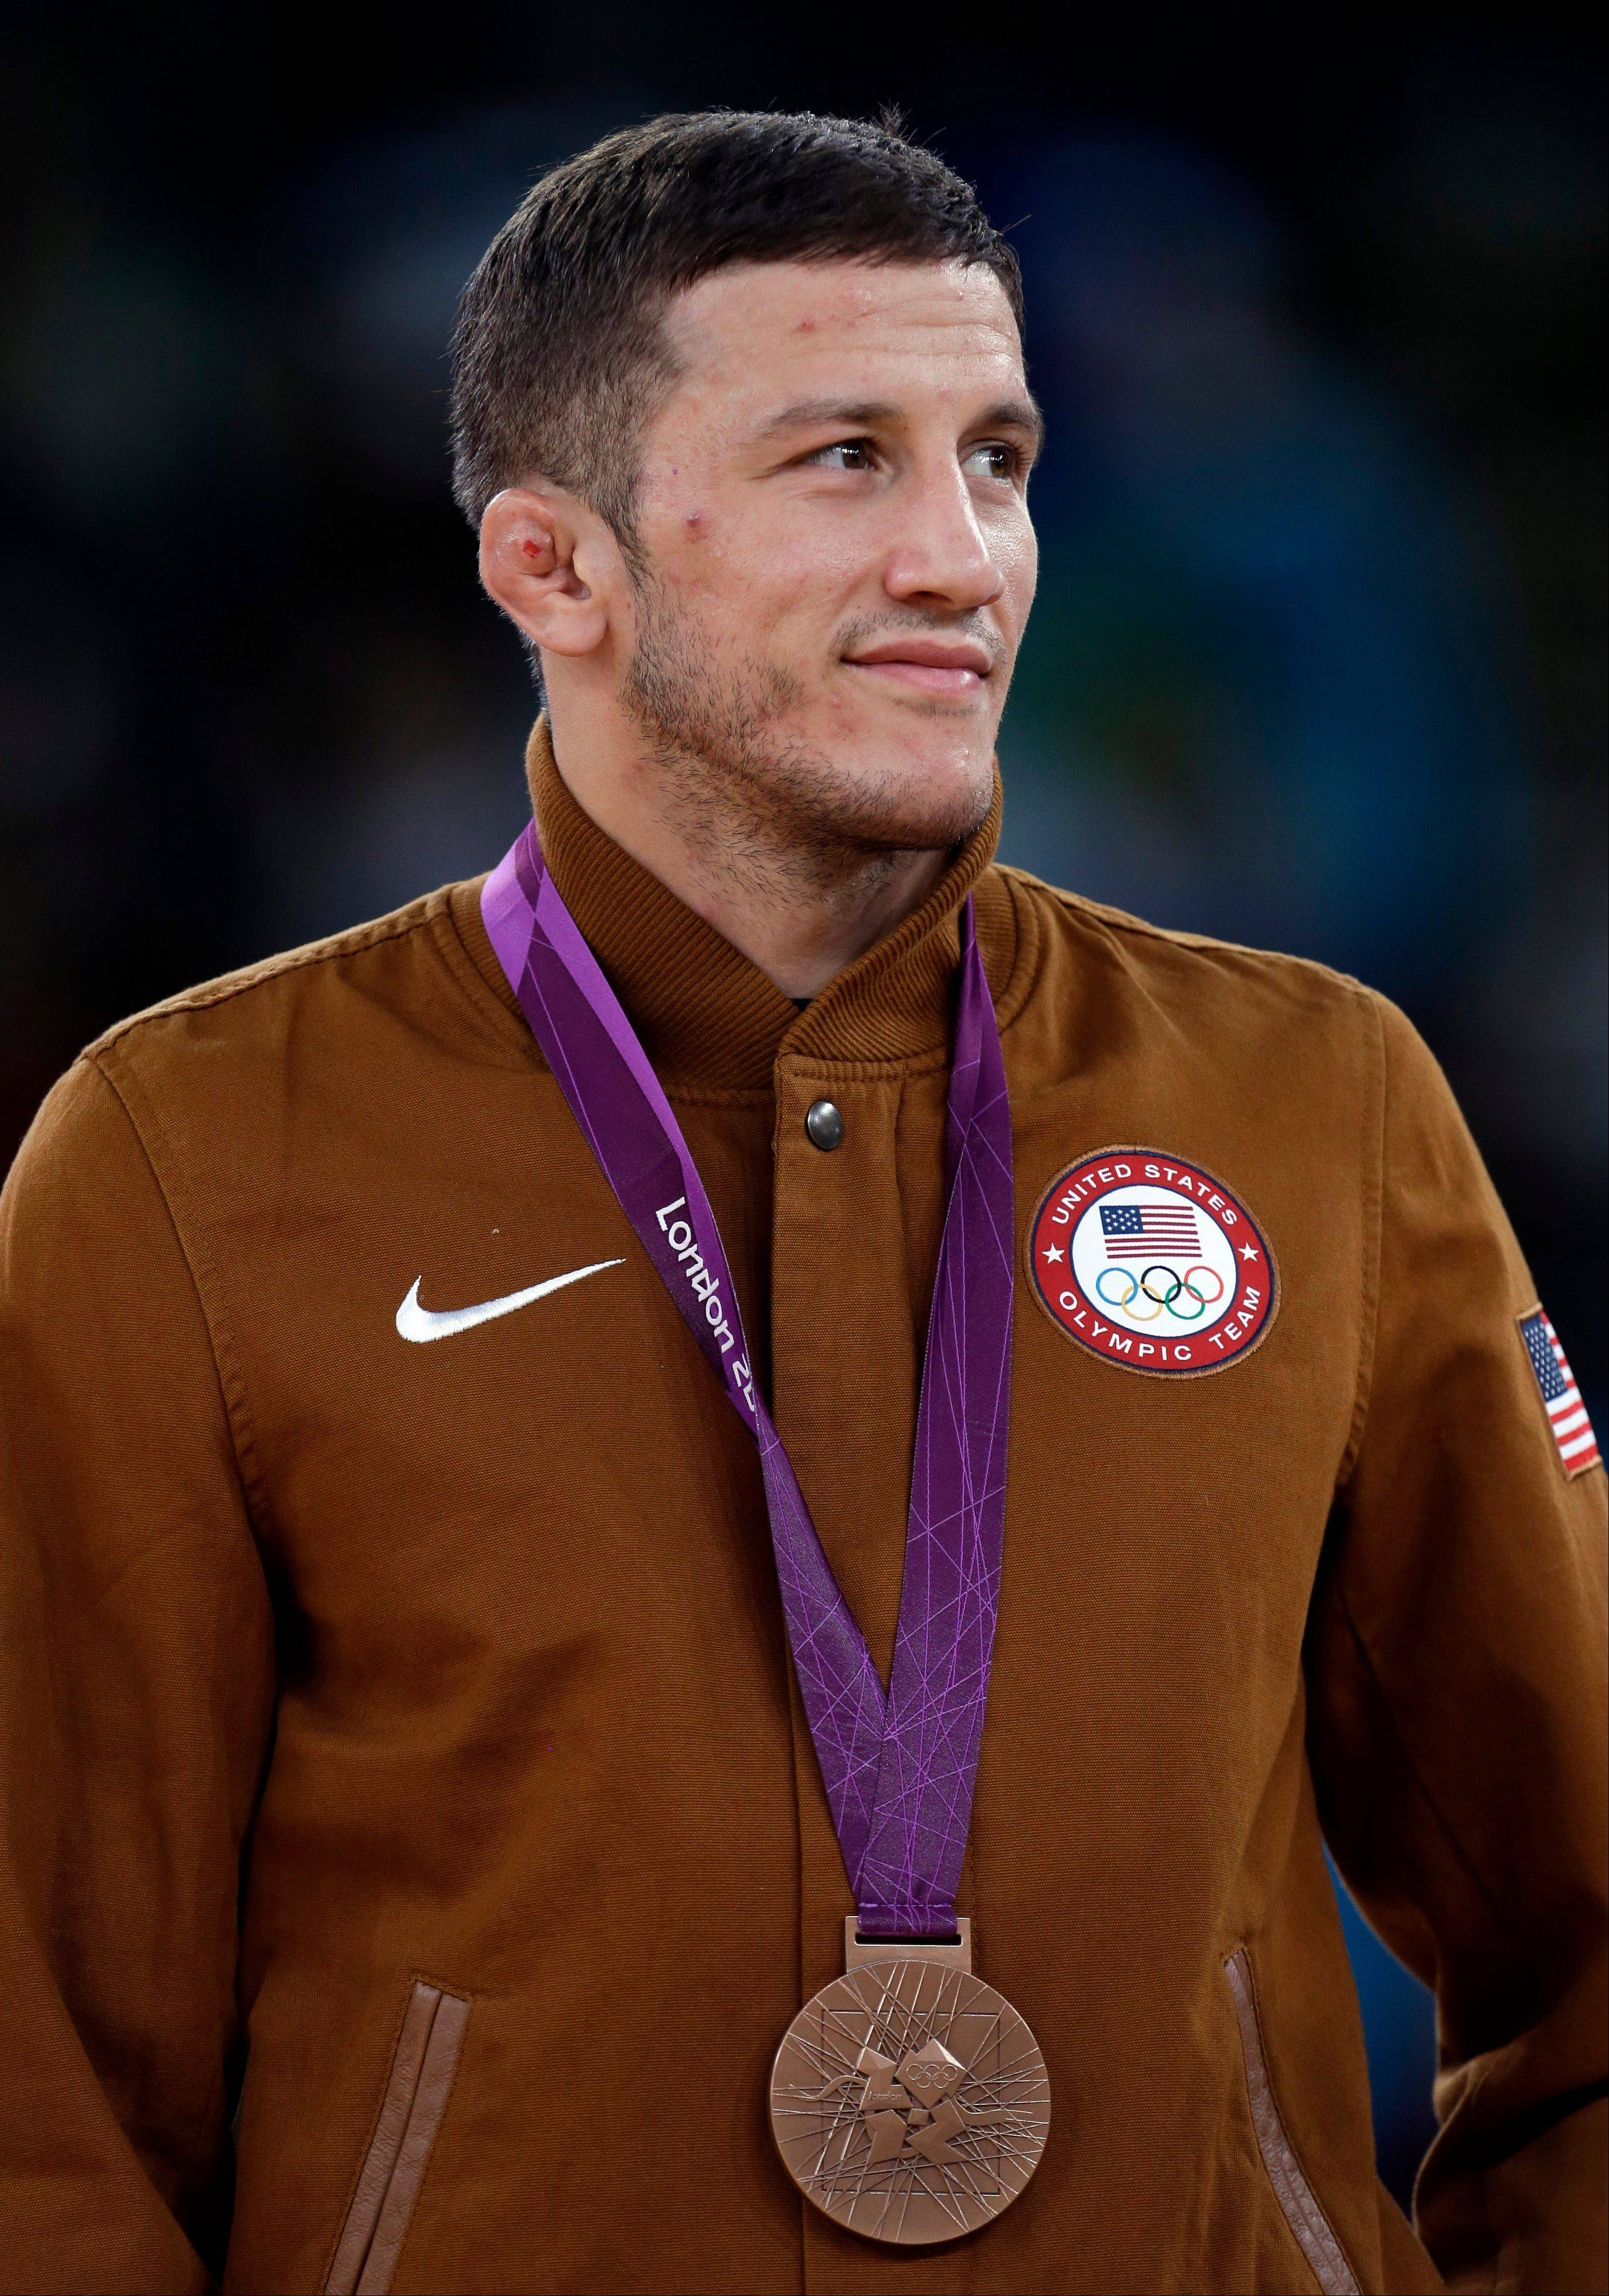 Bronze medalist Coleman Scott of the United States poses with his medal during the victory ceremony for the men's 60-kg freestyle wrestling competition at the 2012 Summer Olympics, Saturday, Aug. 11, 2012, in London.